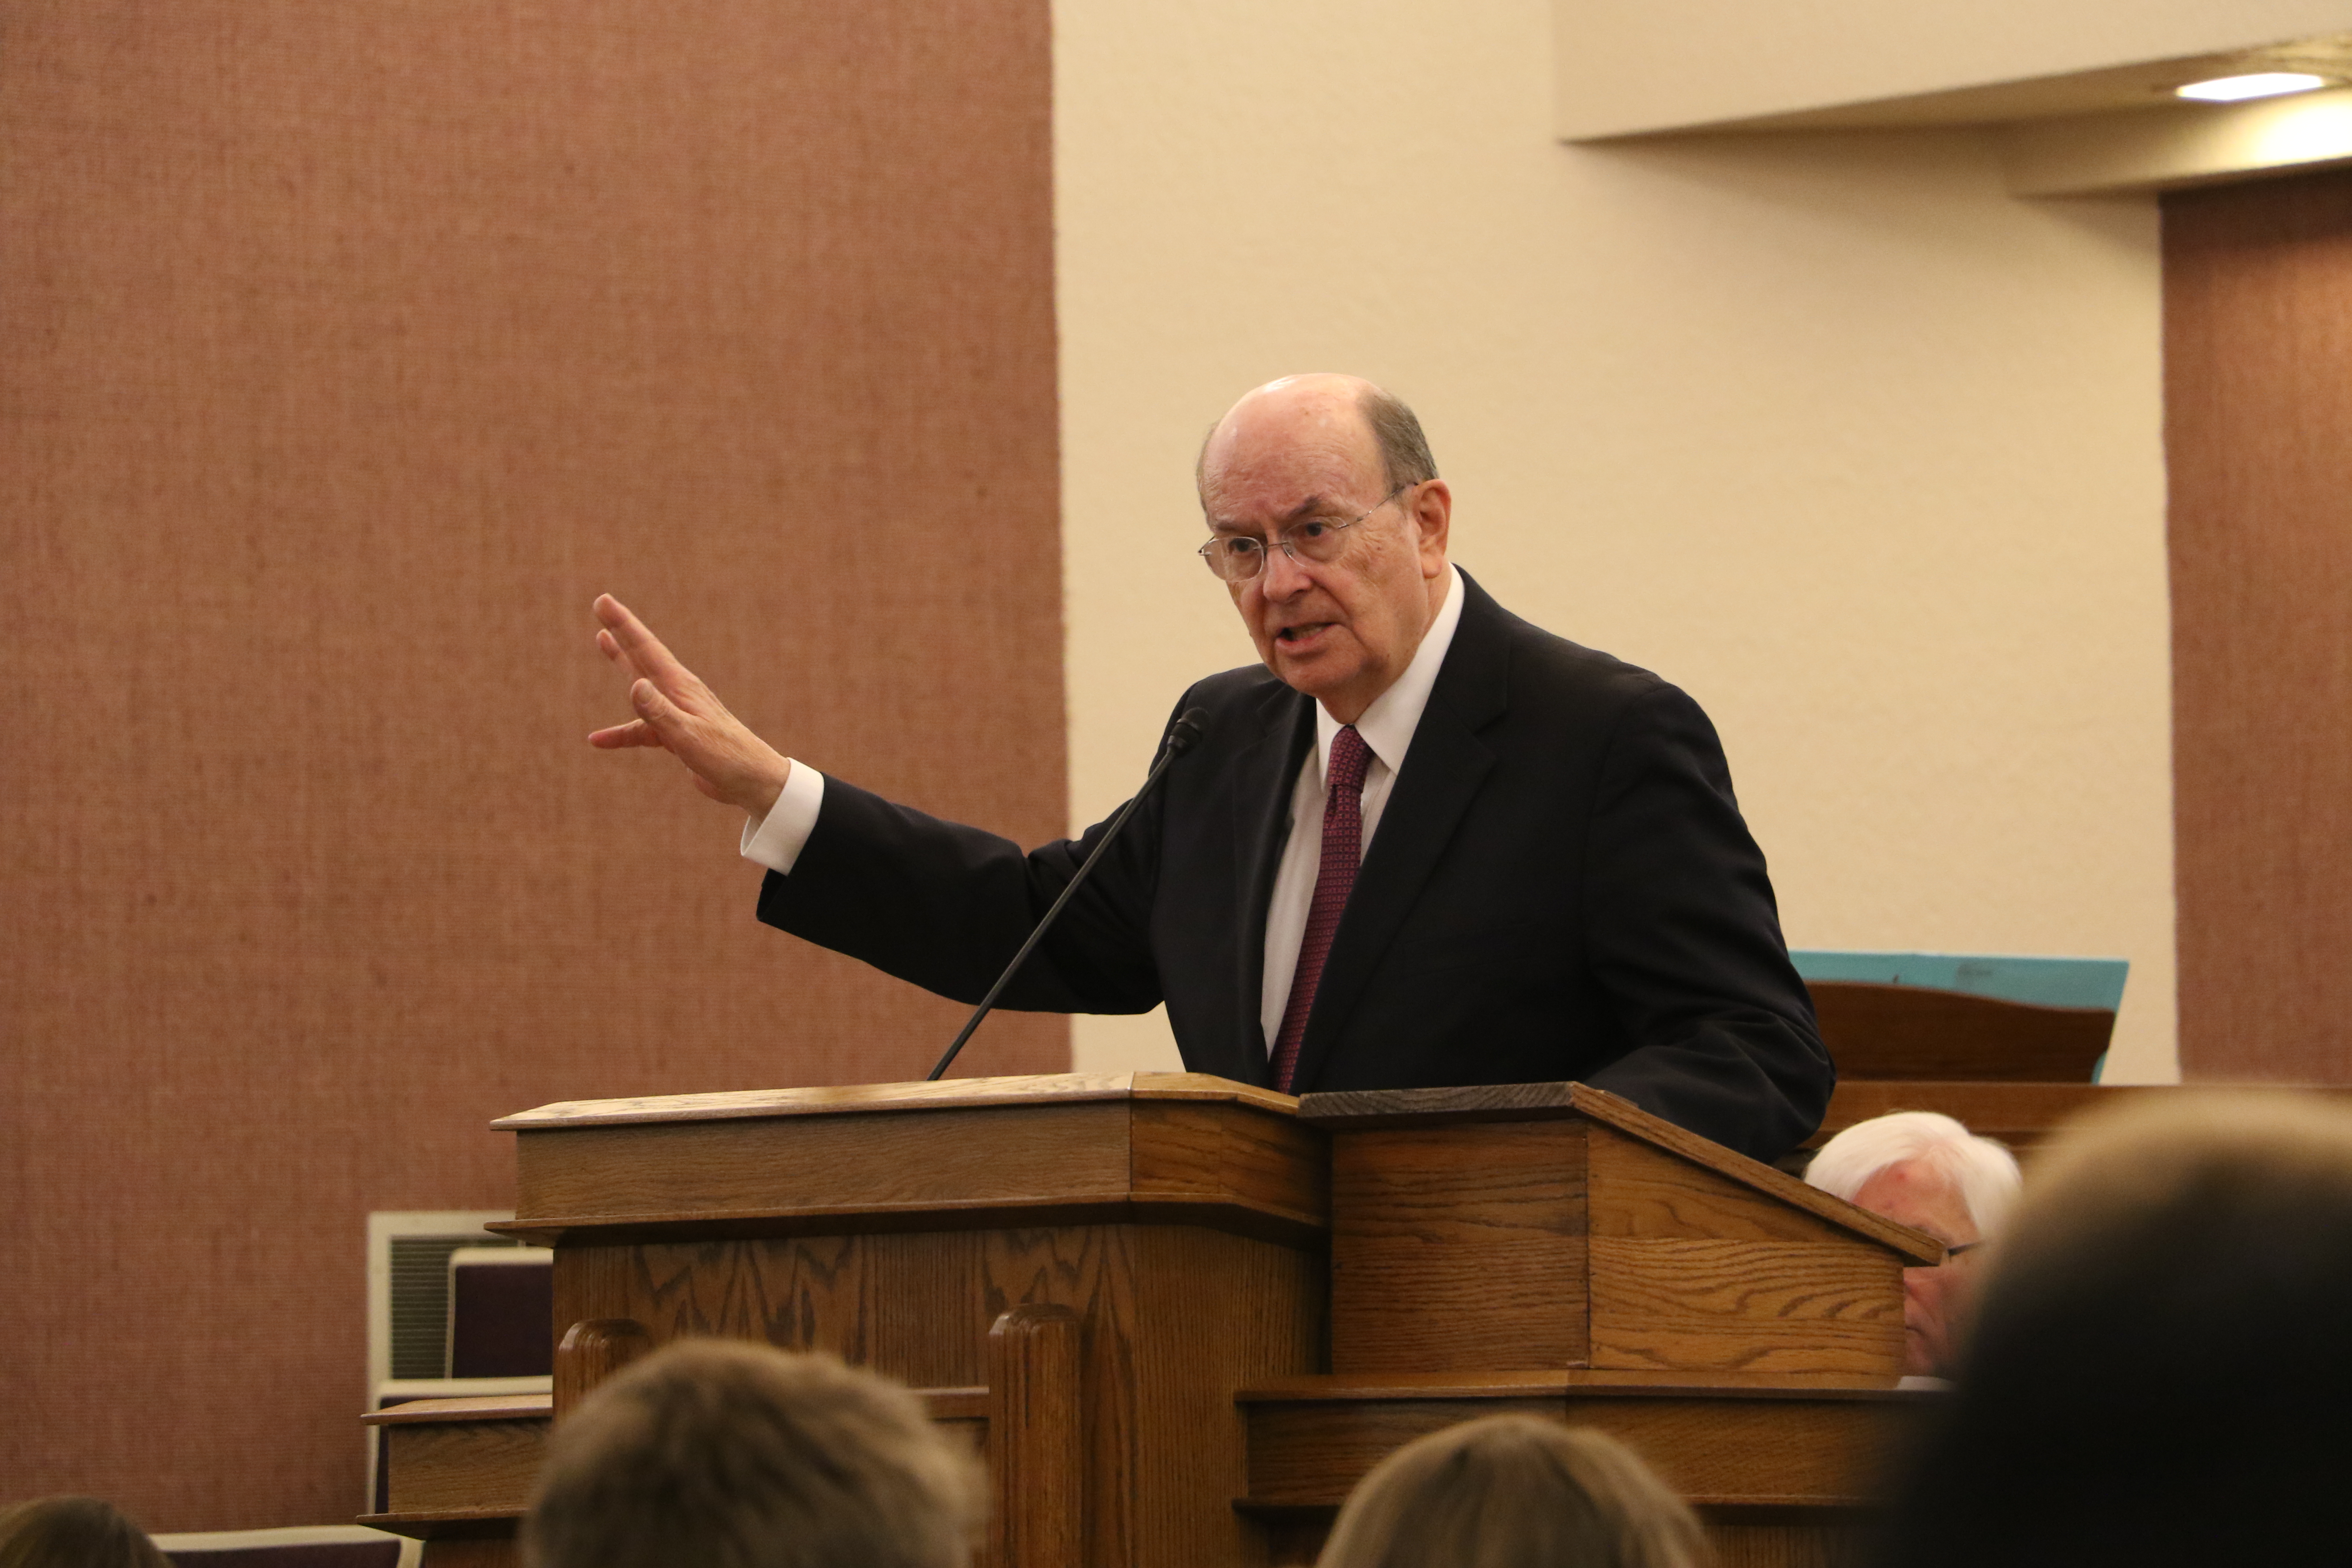 Elder Quentin L. Cook of the Quorum of the Twelve Apostles addresses missionaries in the Louisiana Baton Rouge Mission during a devotional on Saturday, Nov. 16, 2019, in Baton Rouge, Louisiana.